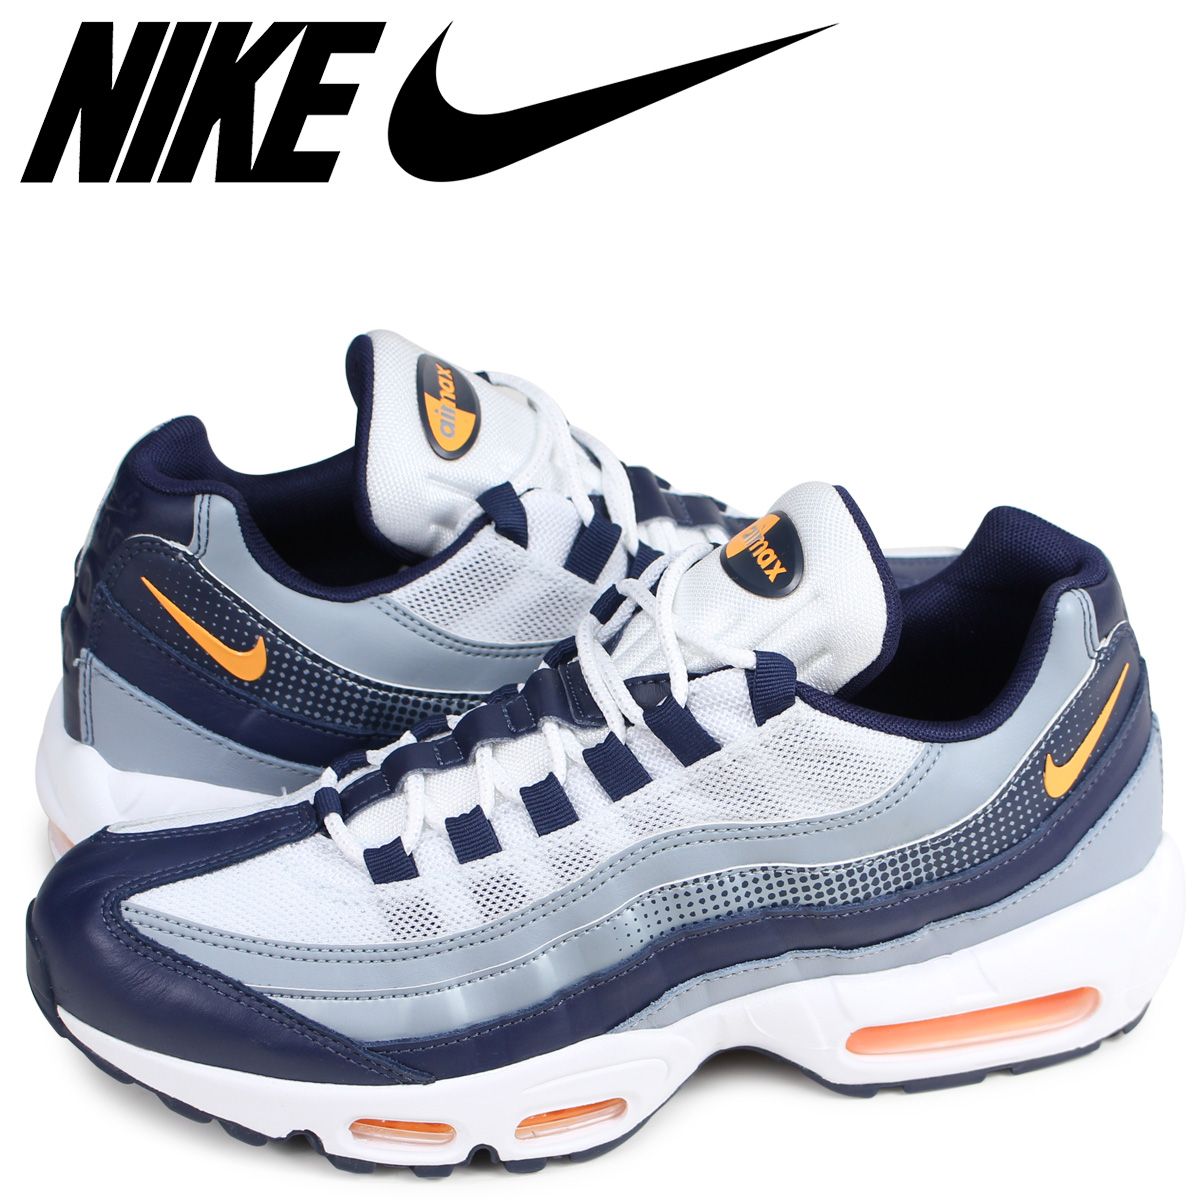 NIKE AIR MAX 95 SE Kie Ney AMAX 95 sneakers men navy AJ2018 401 [65 Shinnyu load]